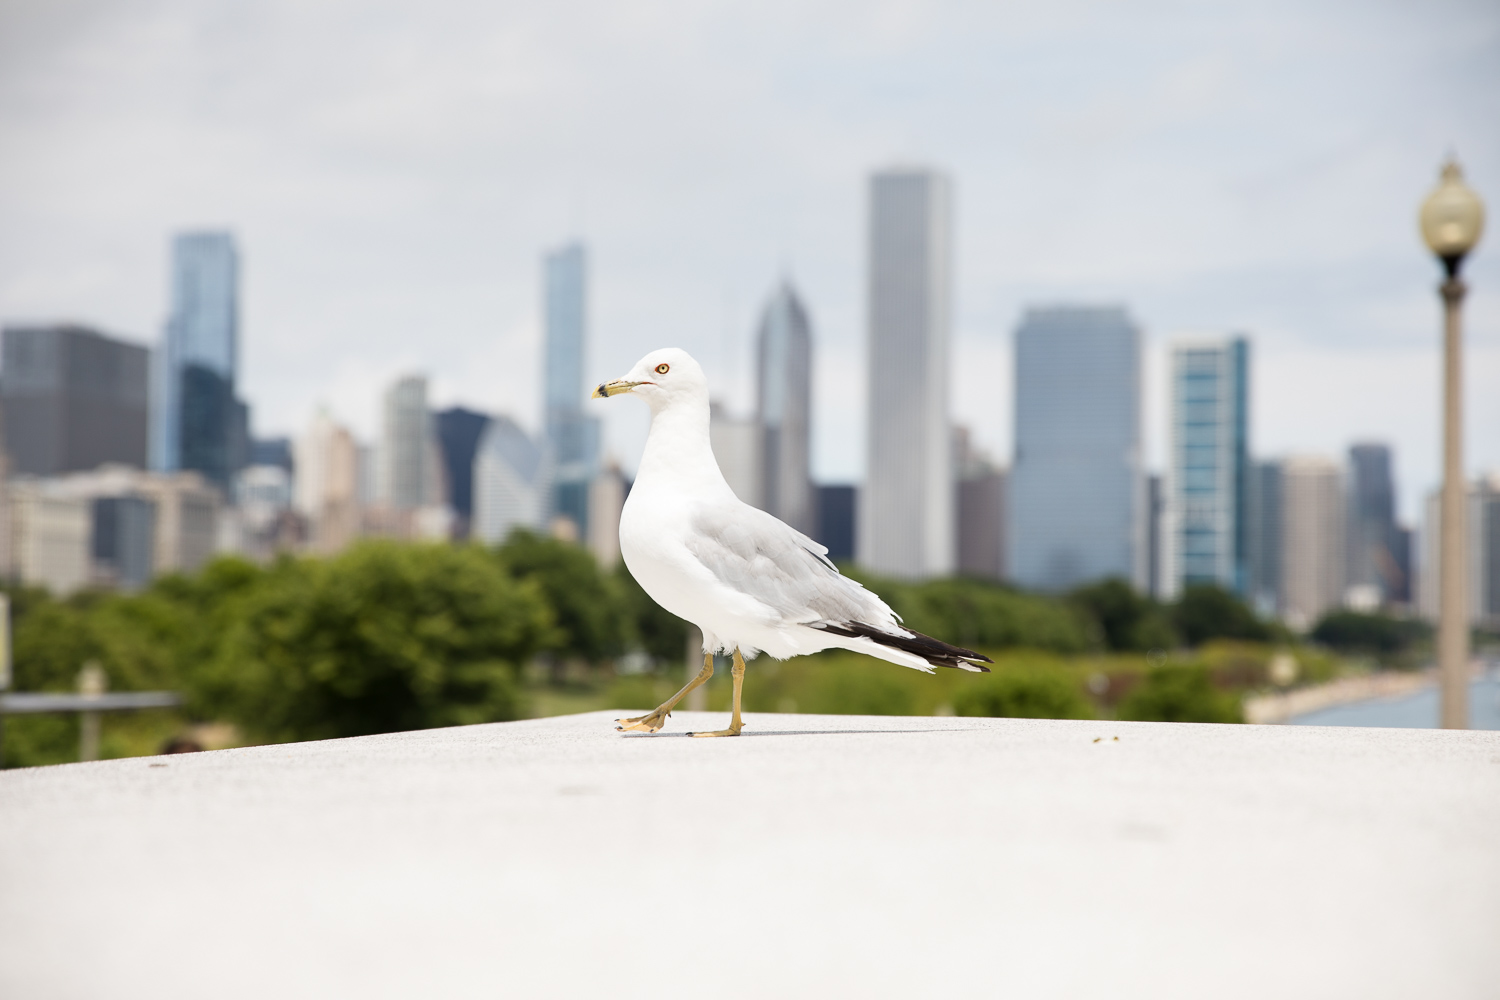 Chicago is under attack by an evil giant gull!